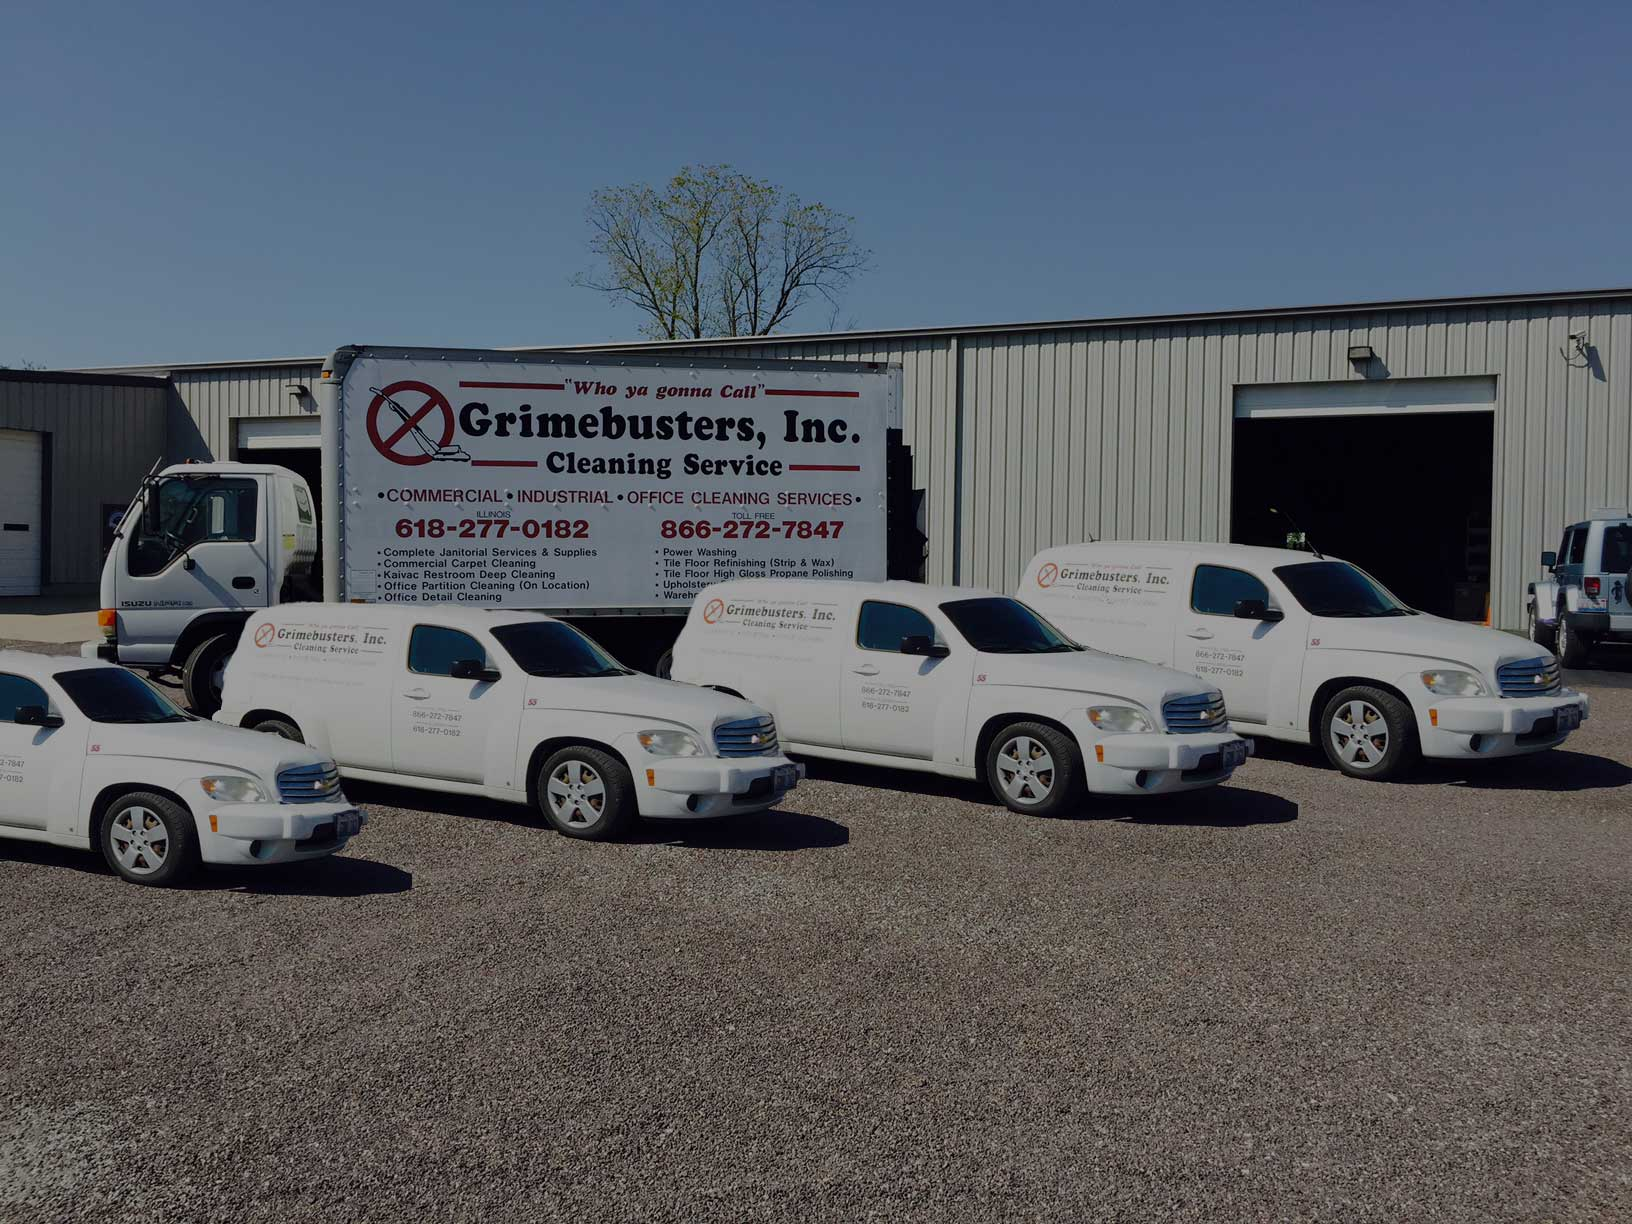 GRIMEBUSTERS, INC IS PROFESSIONAL CLEAN